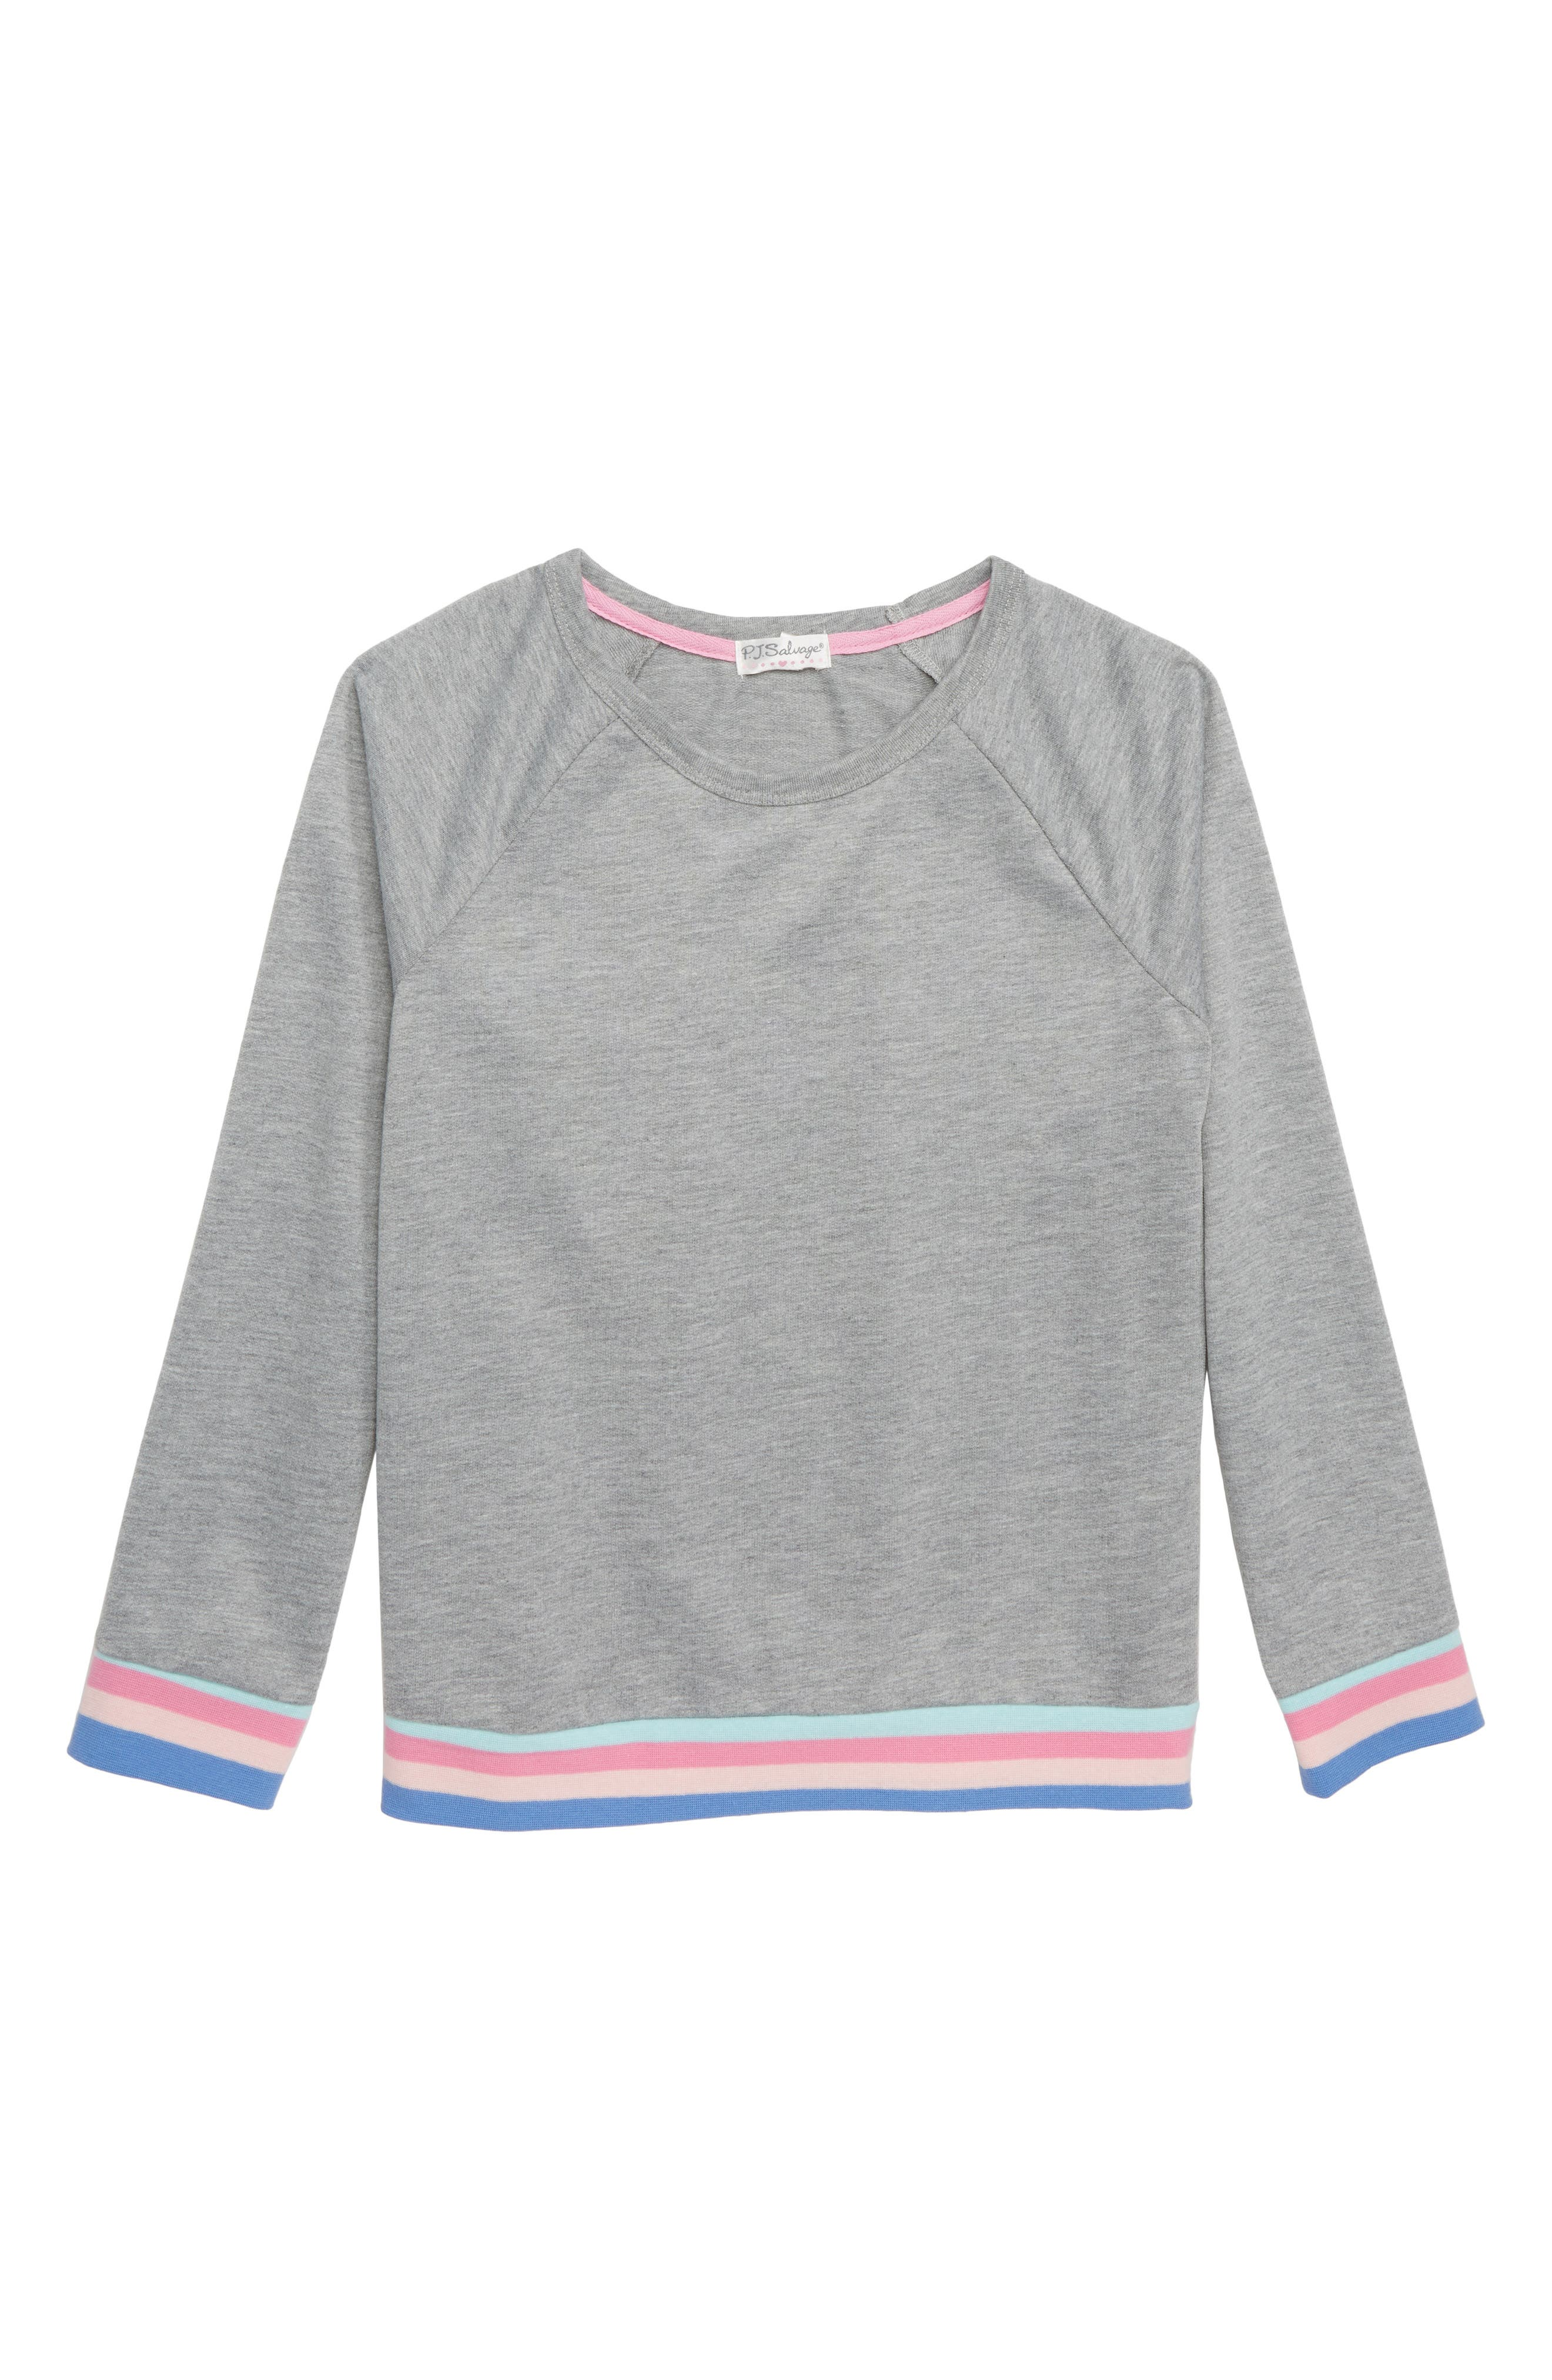 Girl Power Pajama Top,                             Main thumbnail 1, color,                             H GREY